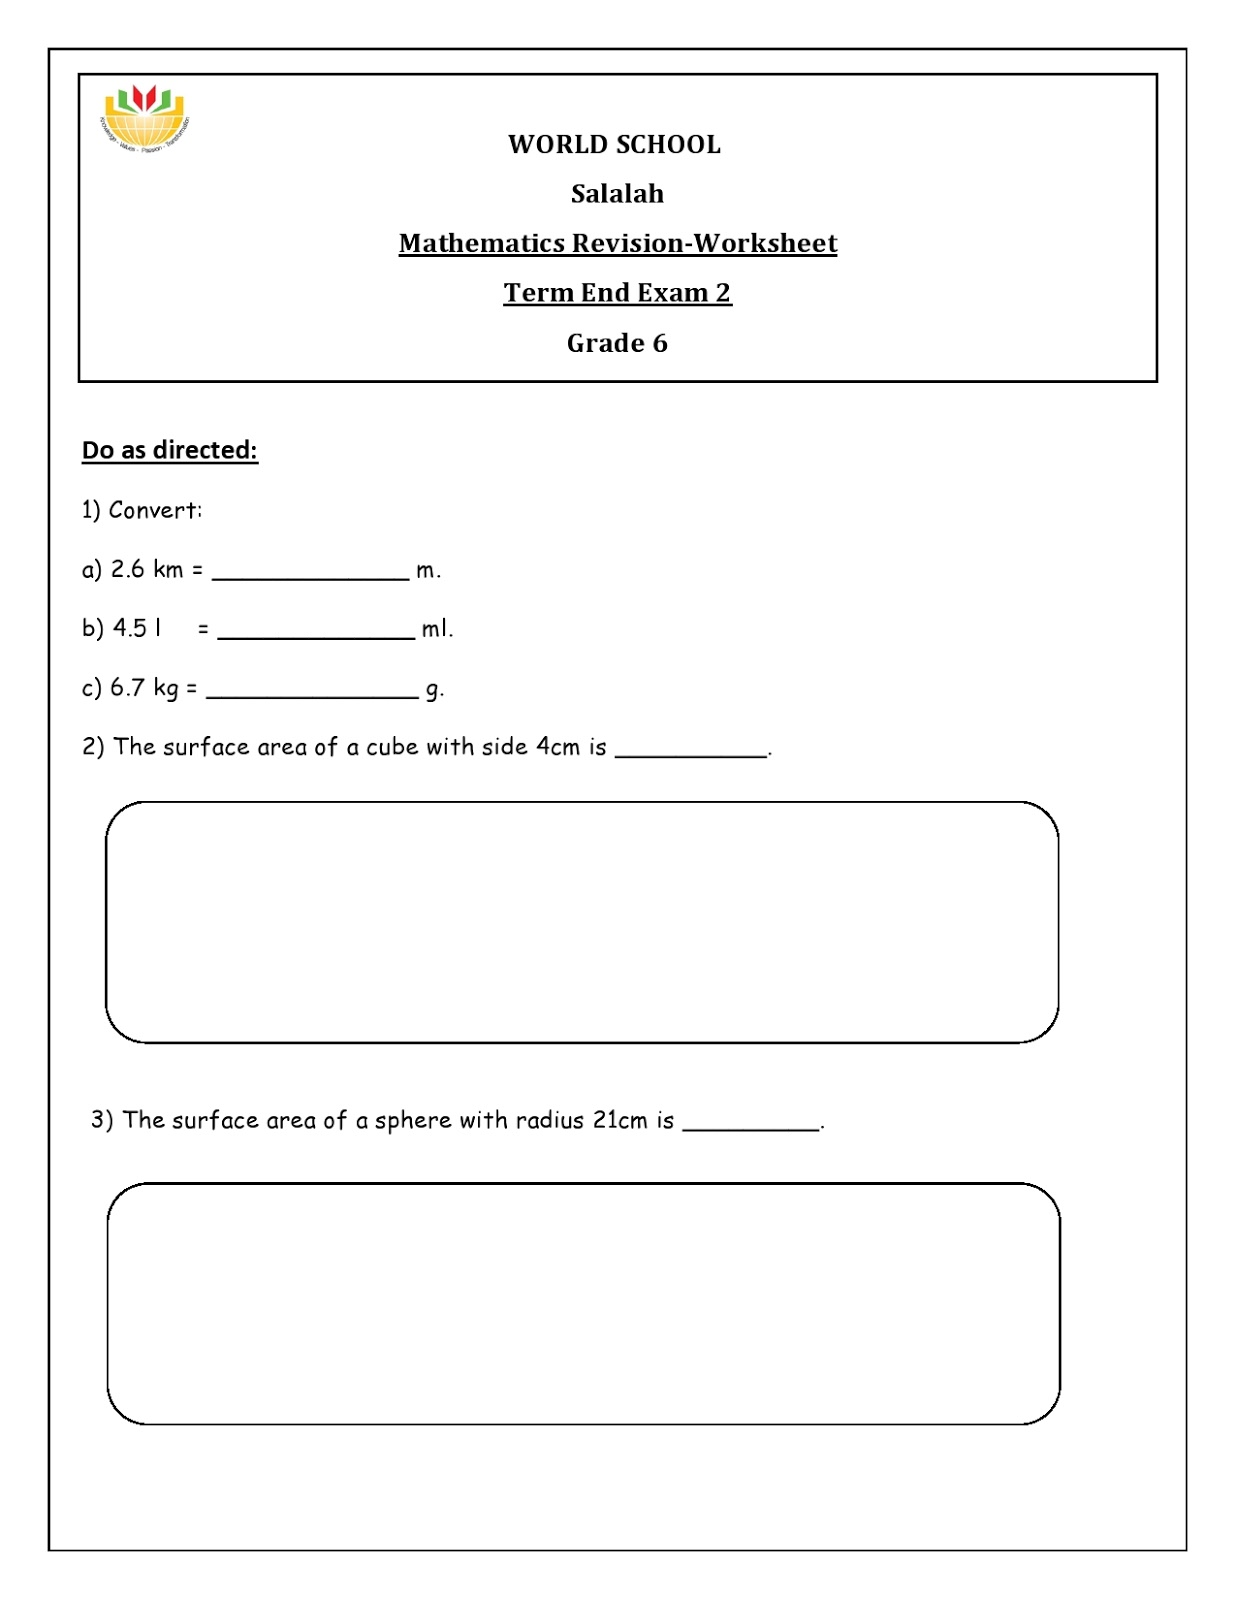 WORLD SCHOOL OMAN: Revision Worksheets for Grade 6 as on 09-05-2019 [ 1600 x 1236 Pixel ]